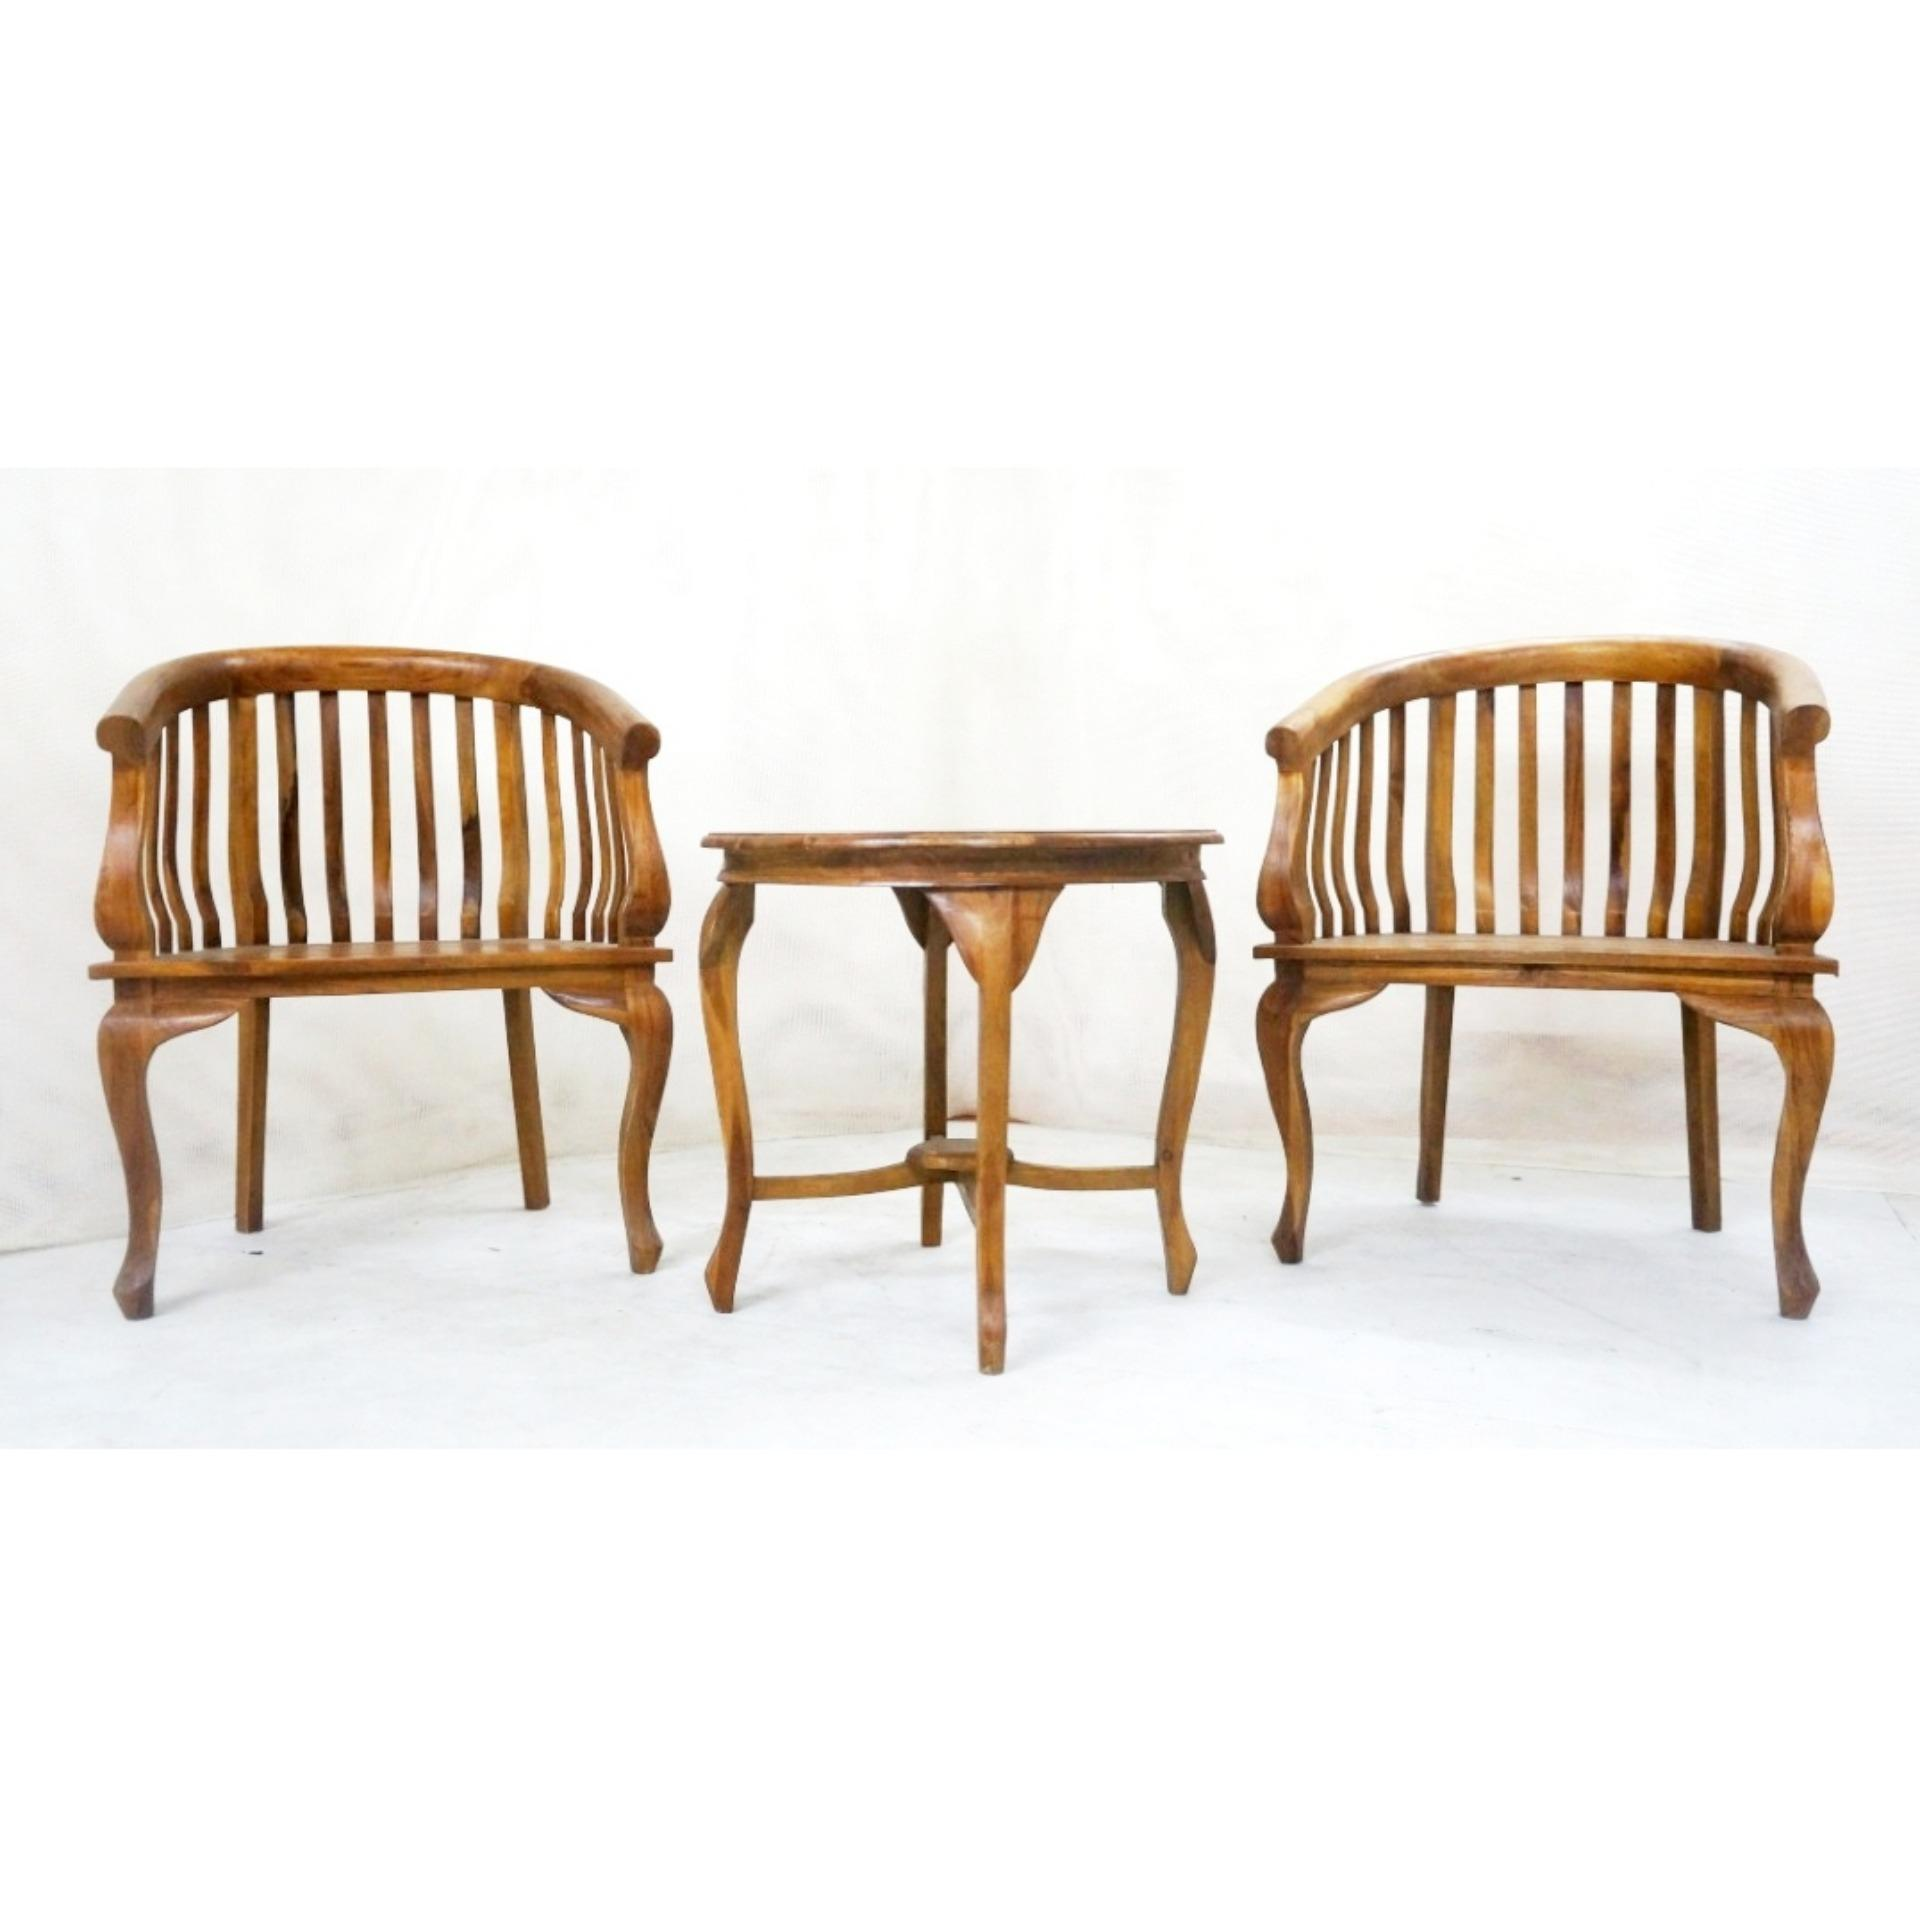 Philippines Linden Teak Handcrafted Solid Wood Lenong Coffee